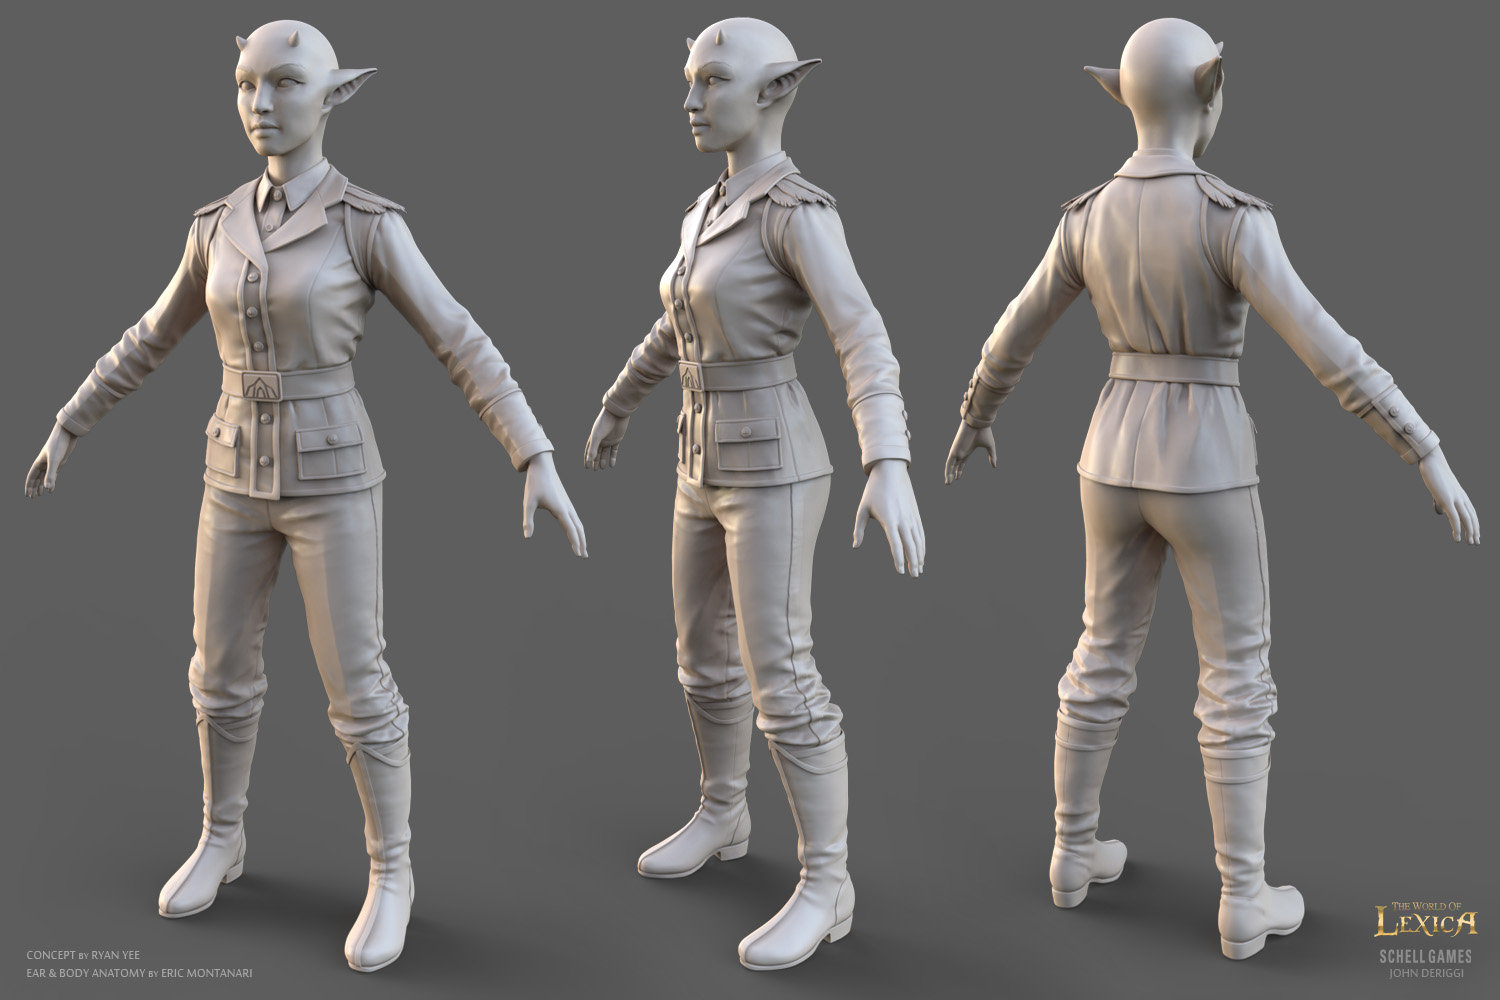 John deriggi councilfemale sculpt 1 5